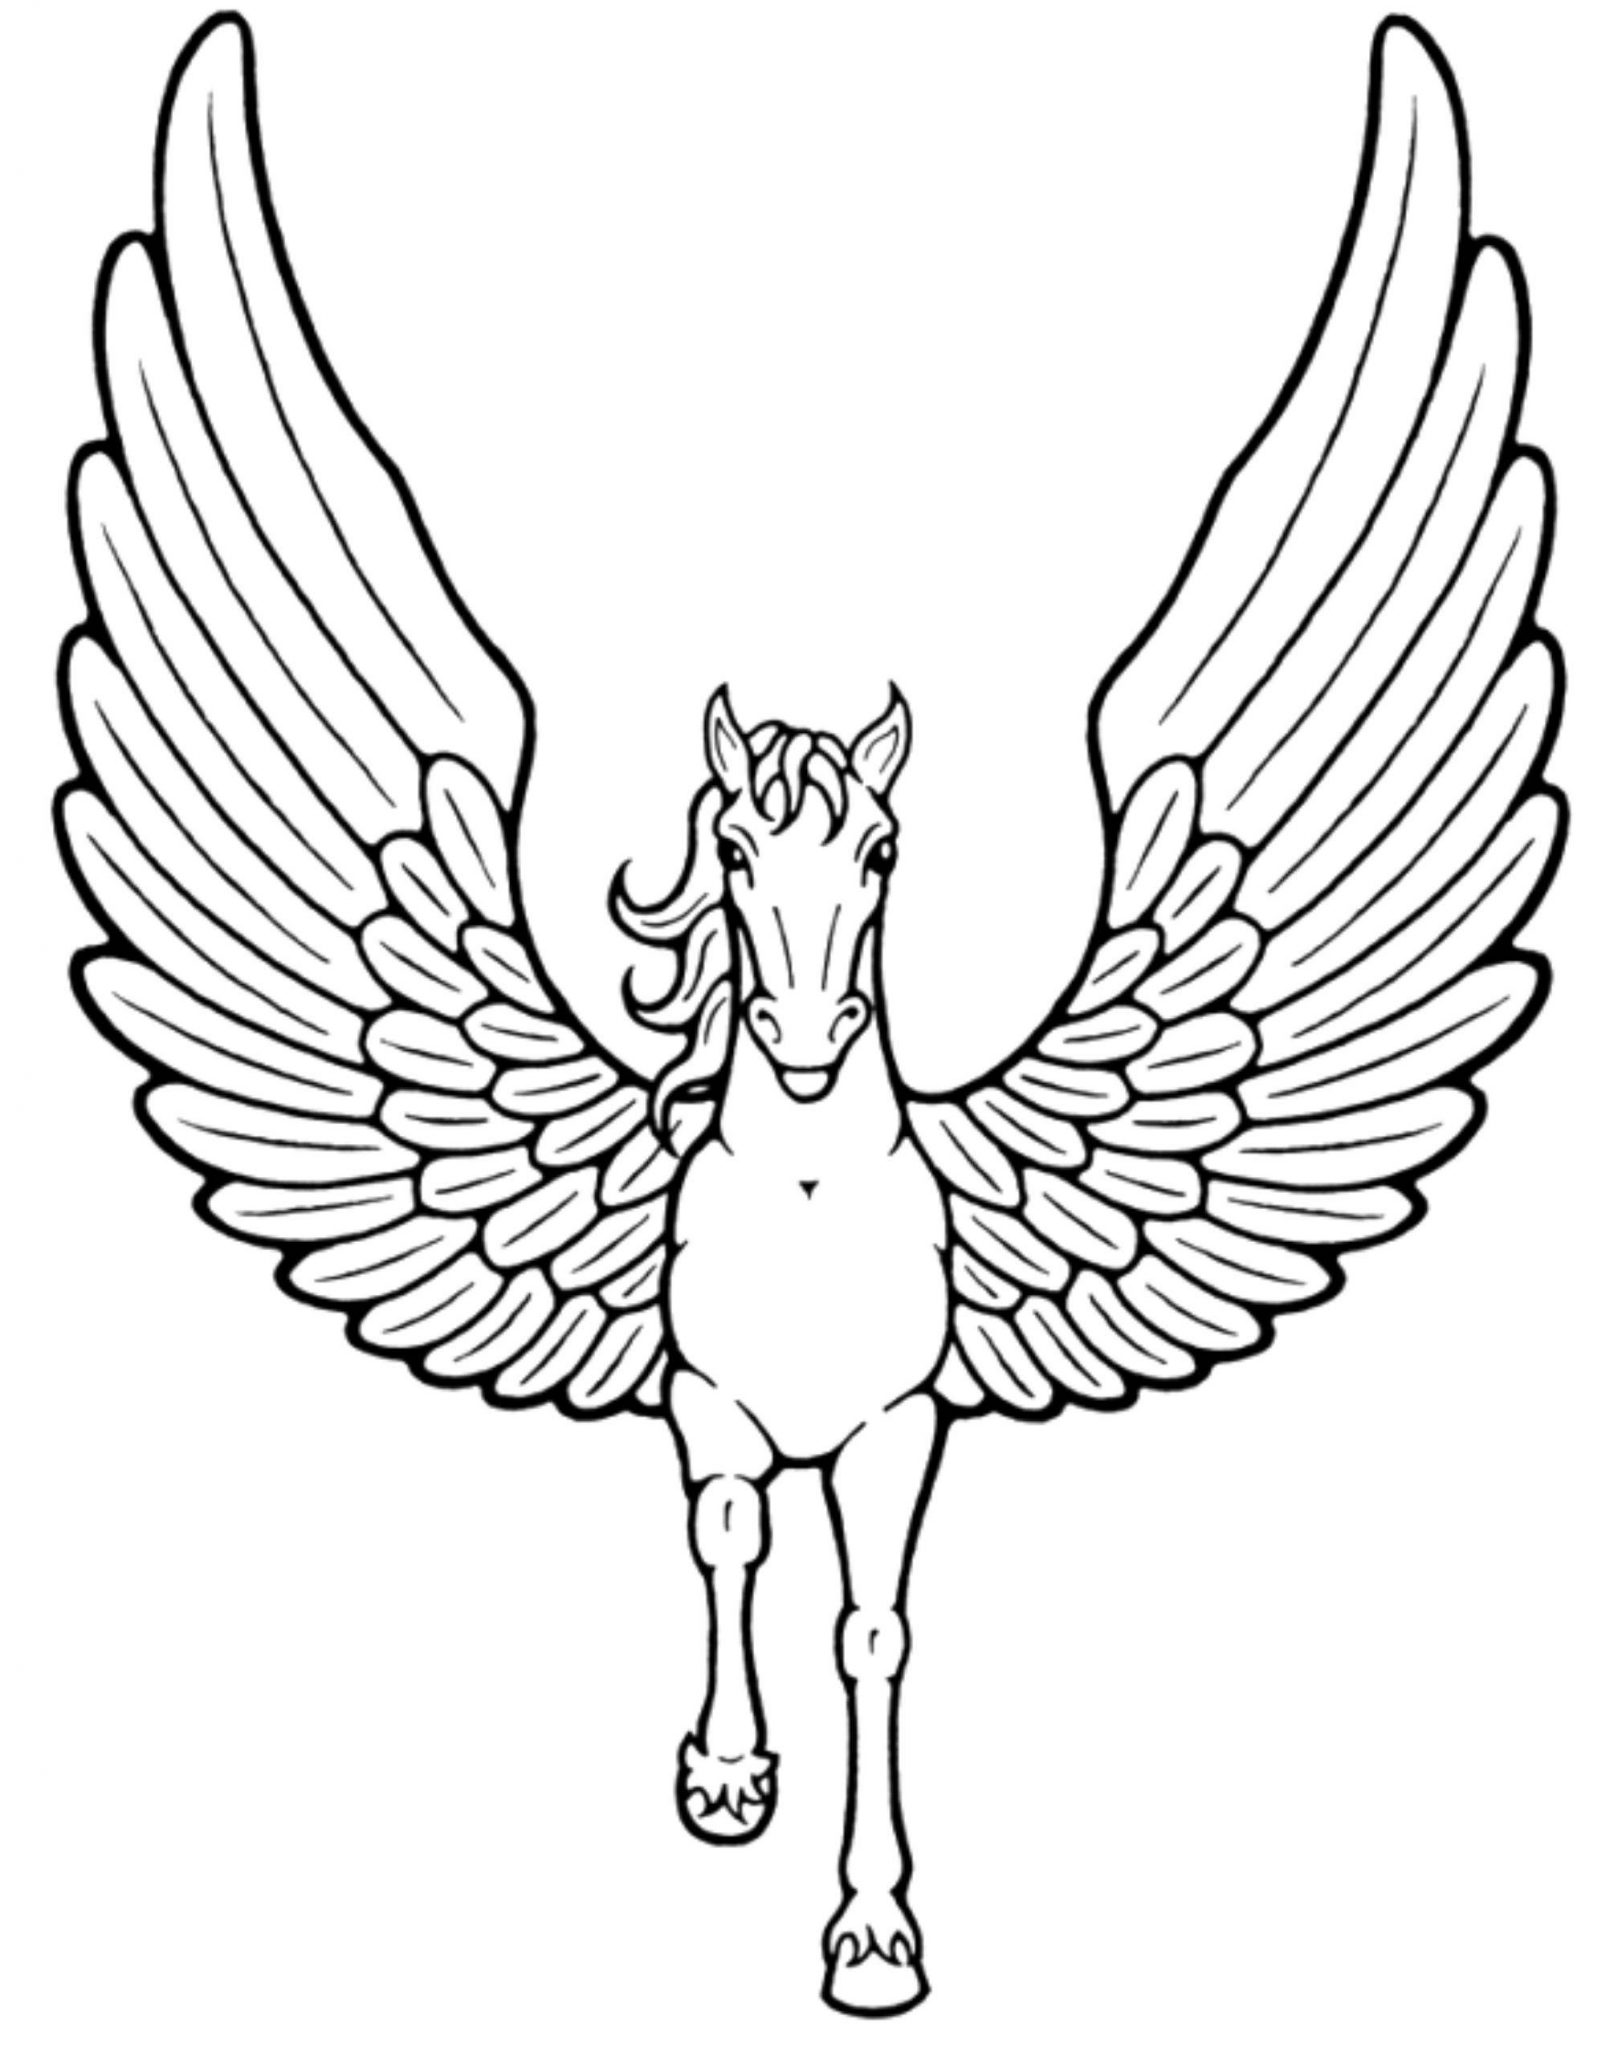 coloring pages of unicorns unicorn on its two back legs unicorns adult coloring pages unicorns pages of coloring